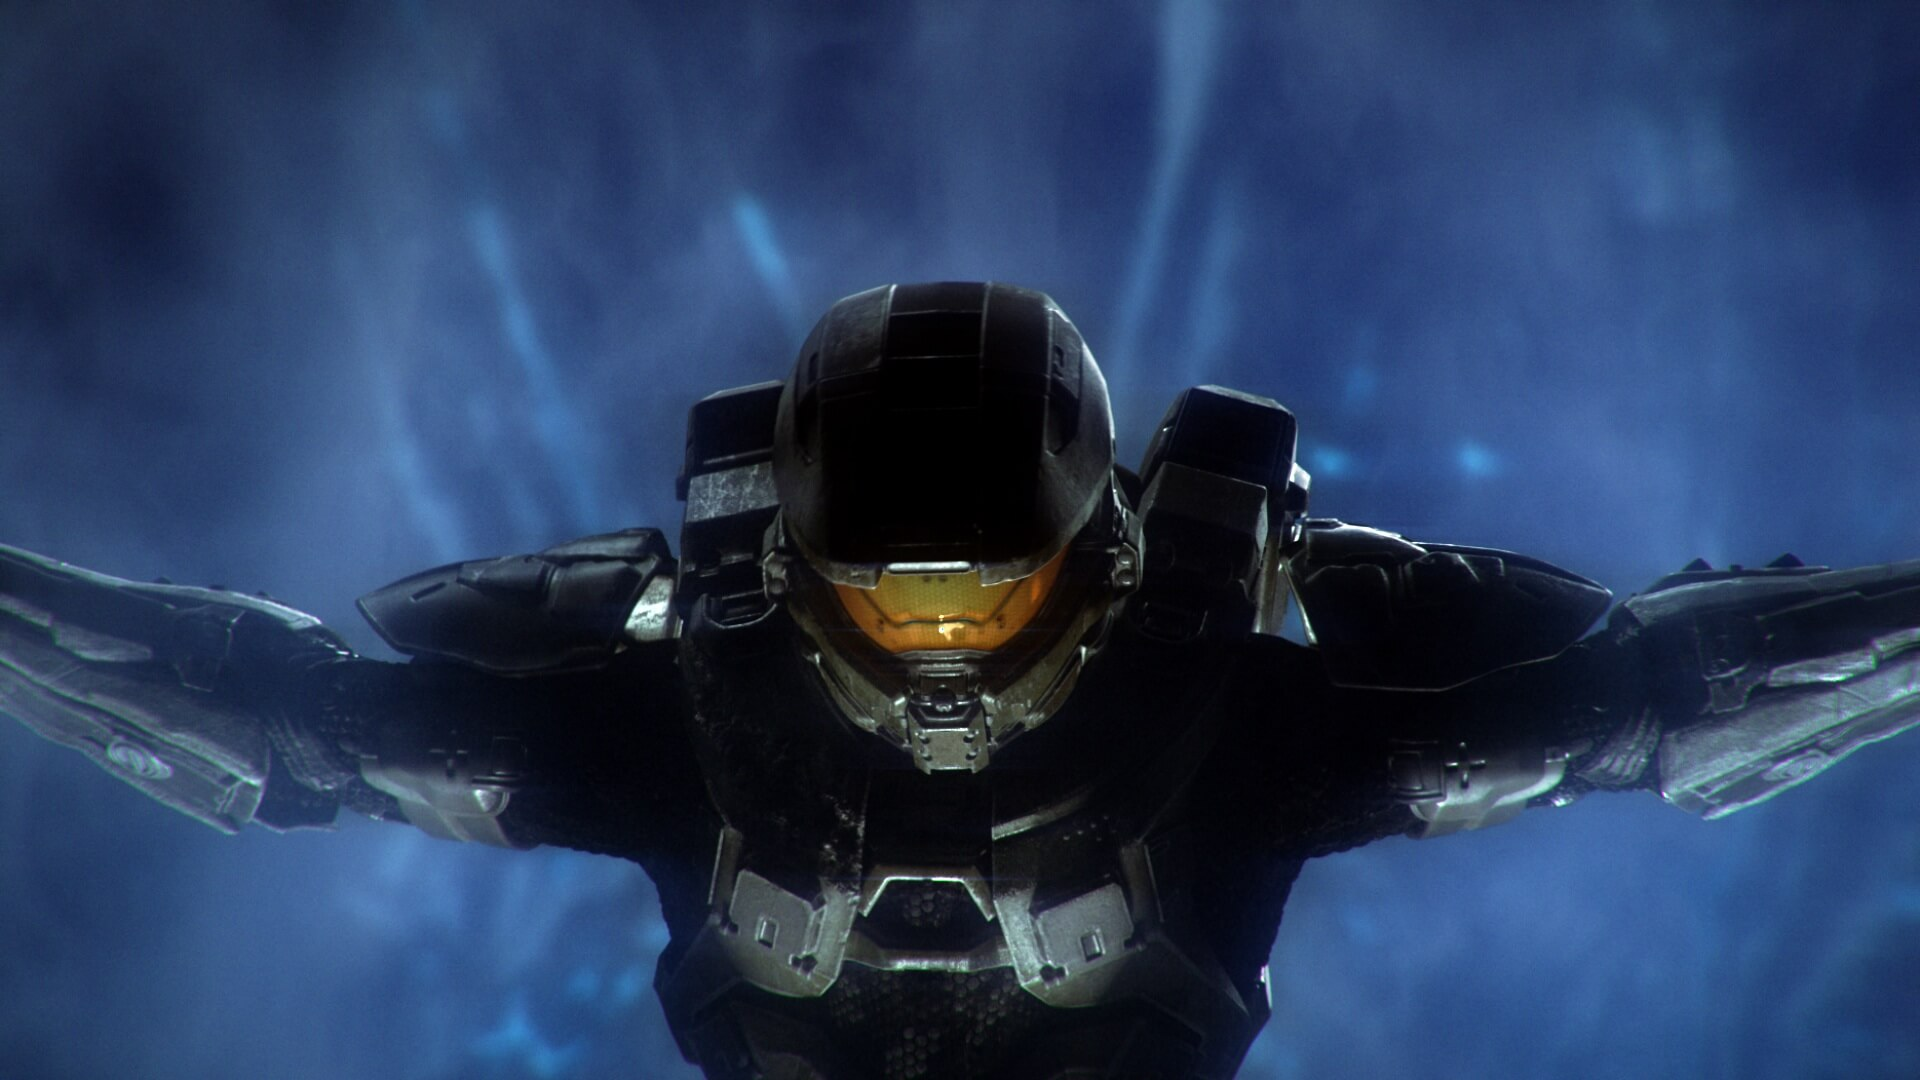 Halo 4' Launch Trailer Release Date & First Image